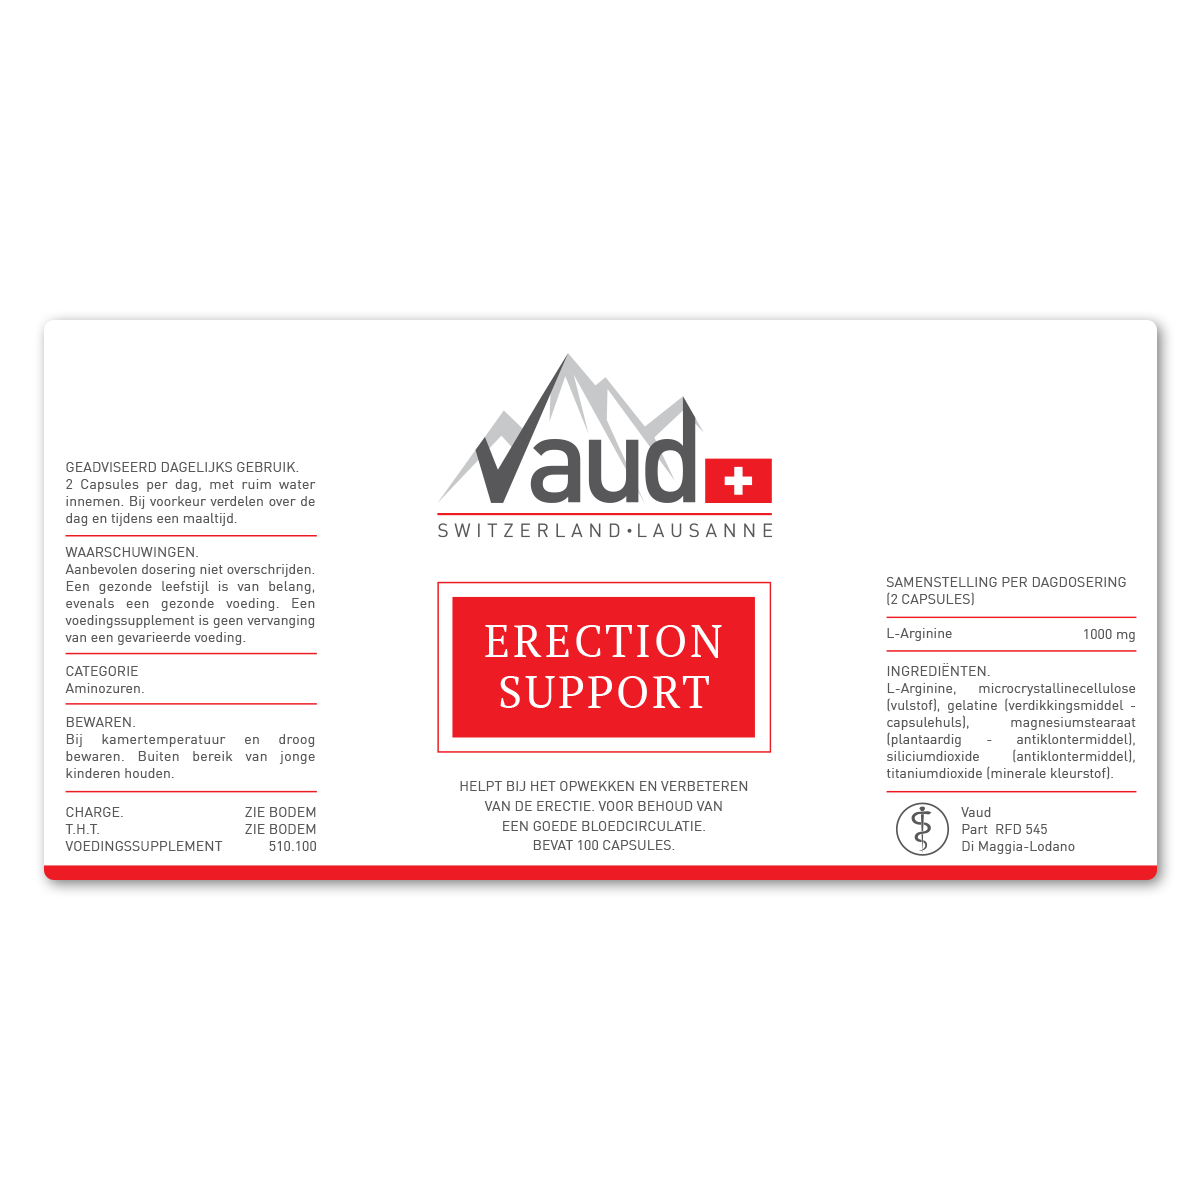 errection-support-vaud